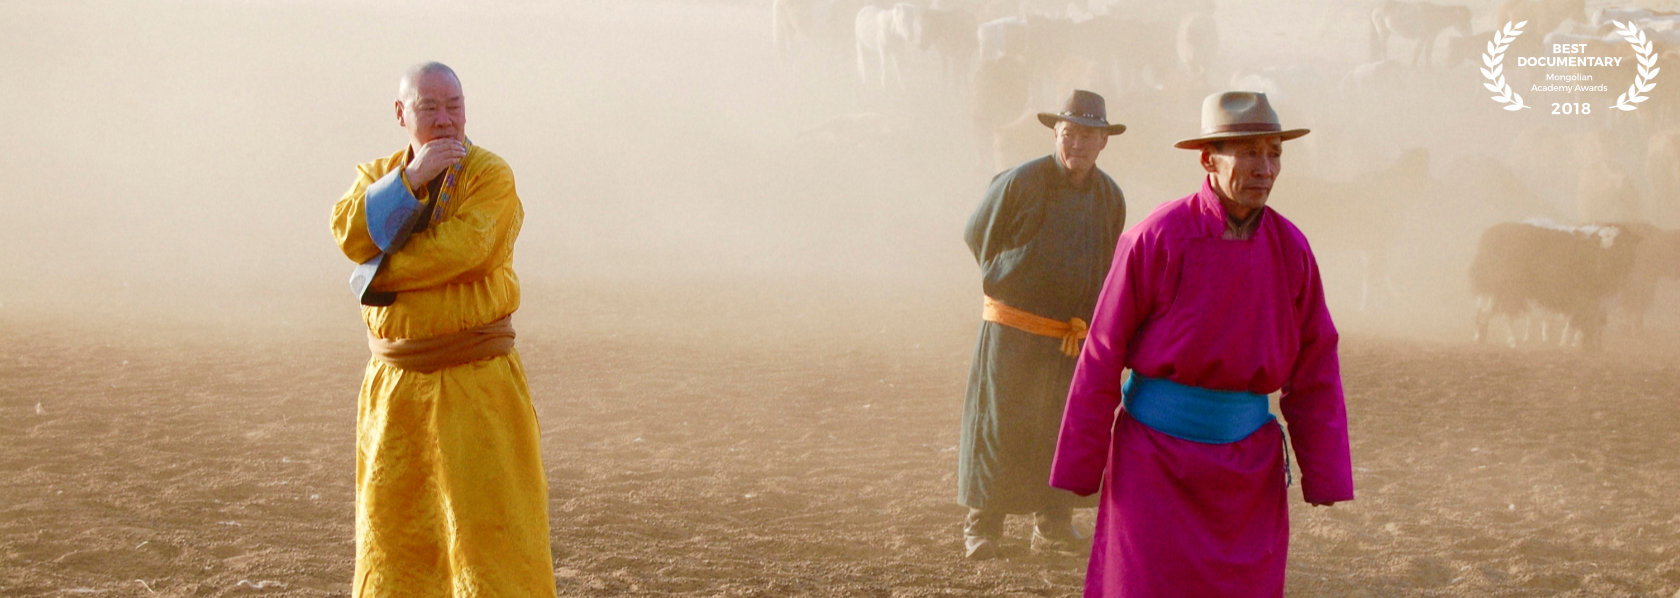 The lama in yellow robes looking at a mongolian man in fuscia clothes blue belt - The Medicine Buddha - THIS Buddhist Film Festival